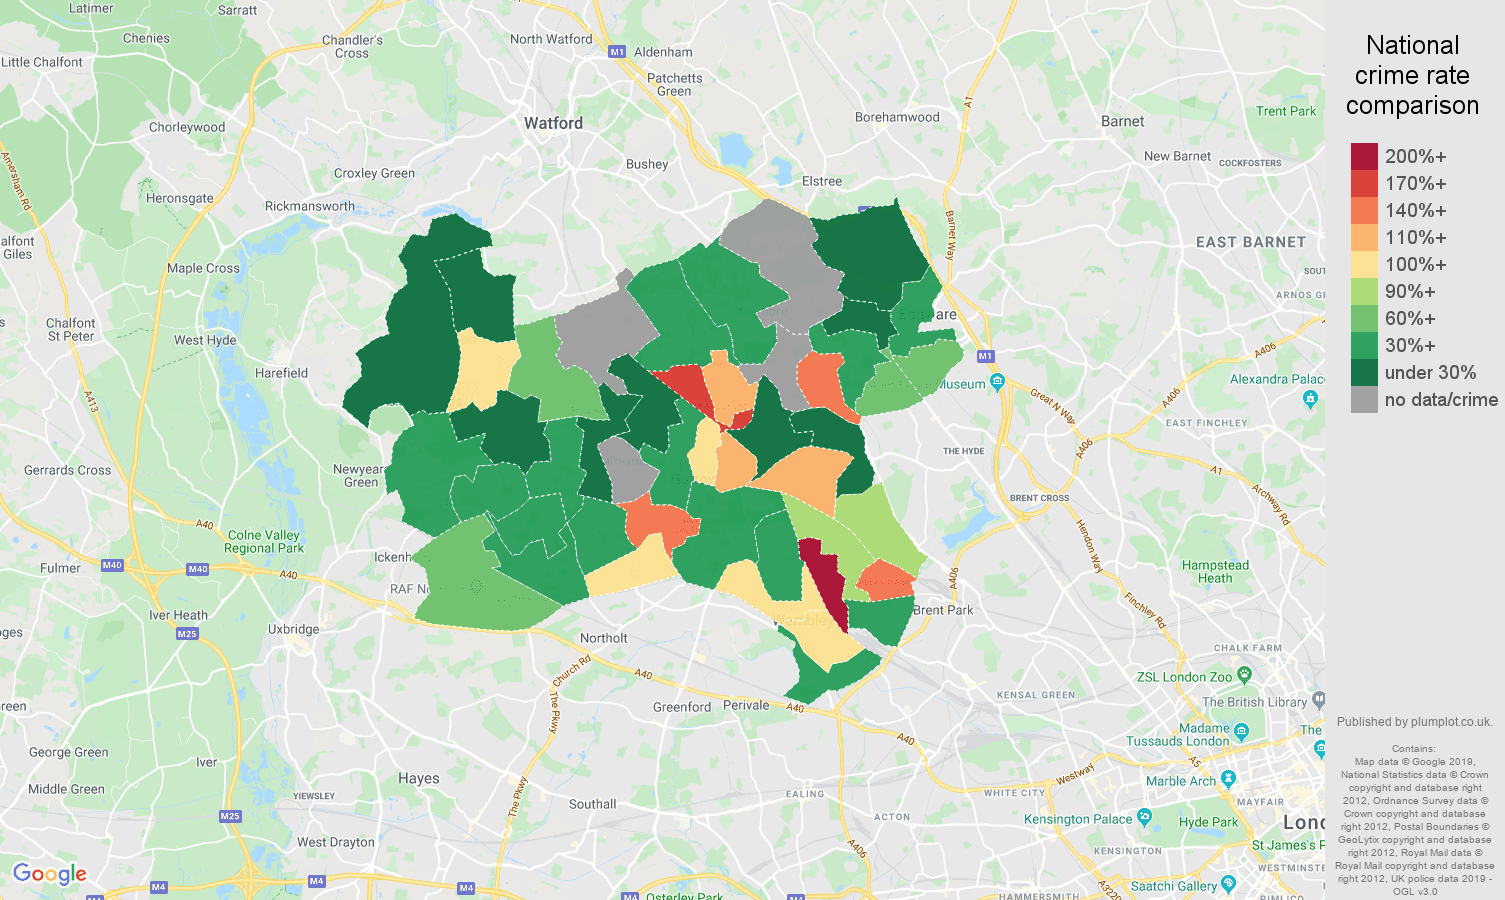 Harrow possession of weapons crime rate comparison map